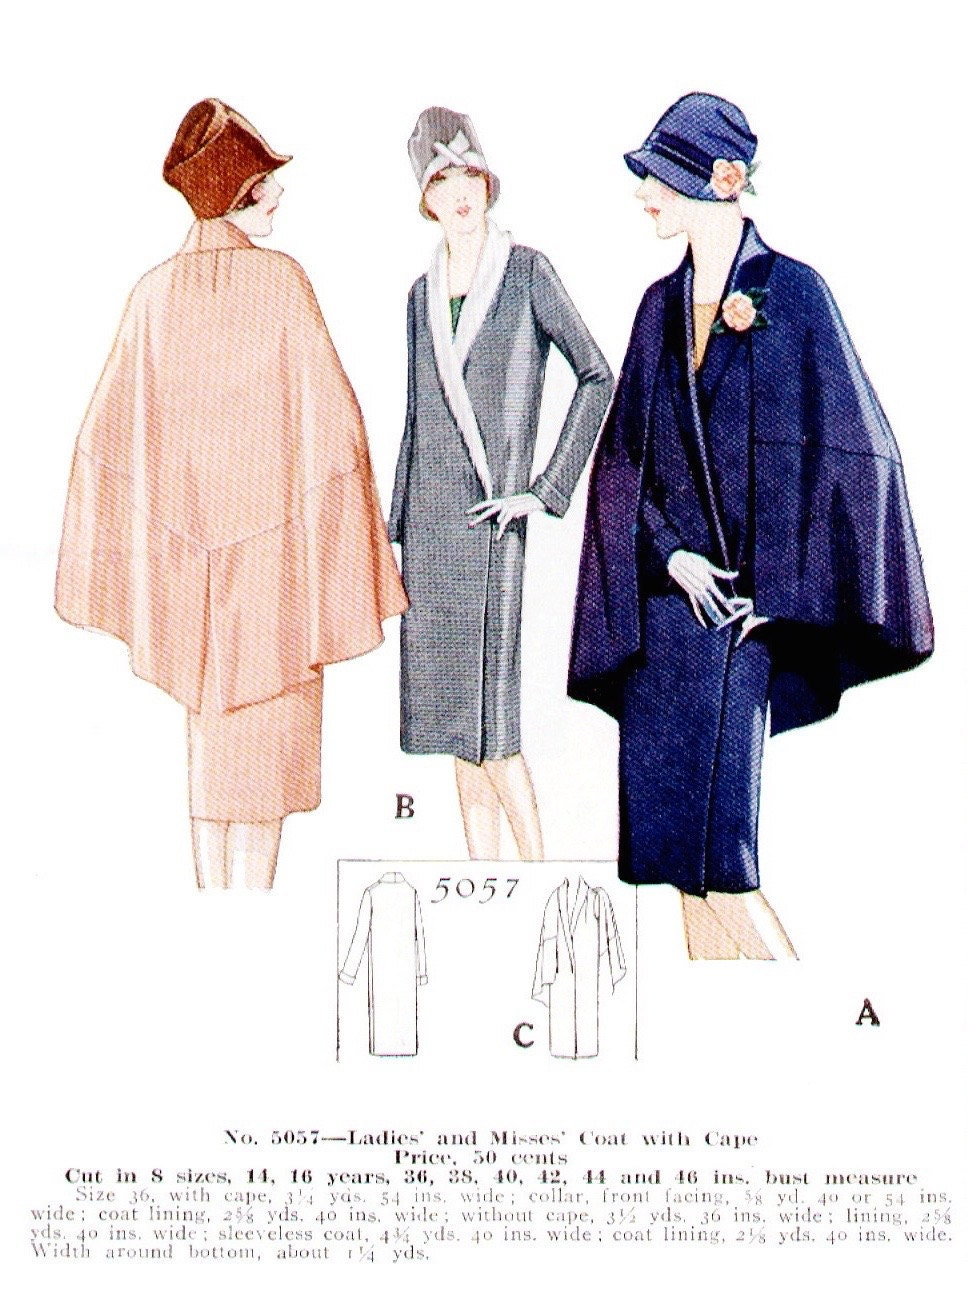 1920s coat pattern illustration - McCall 5057 (M7259)